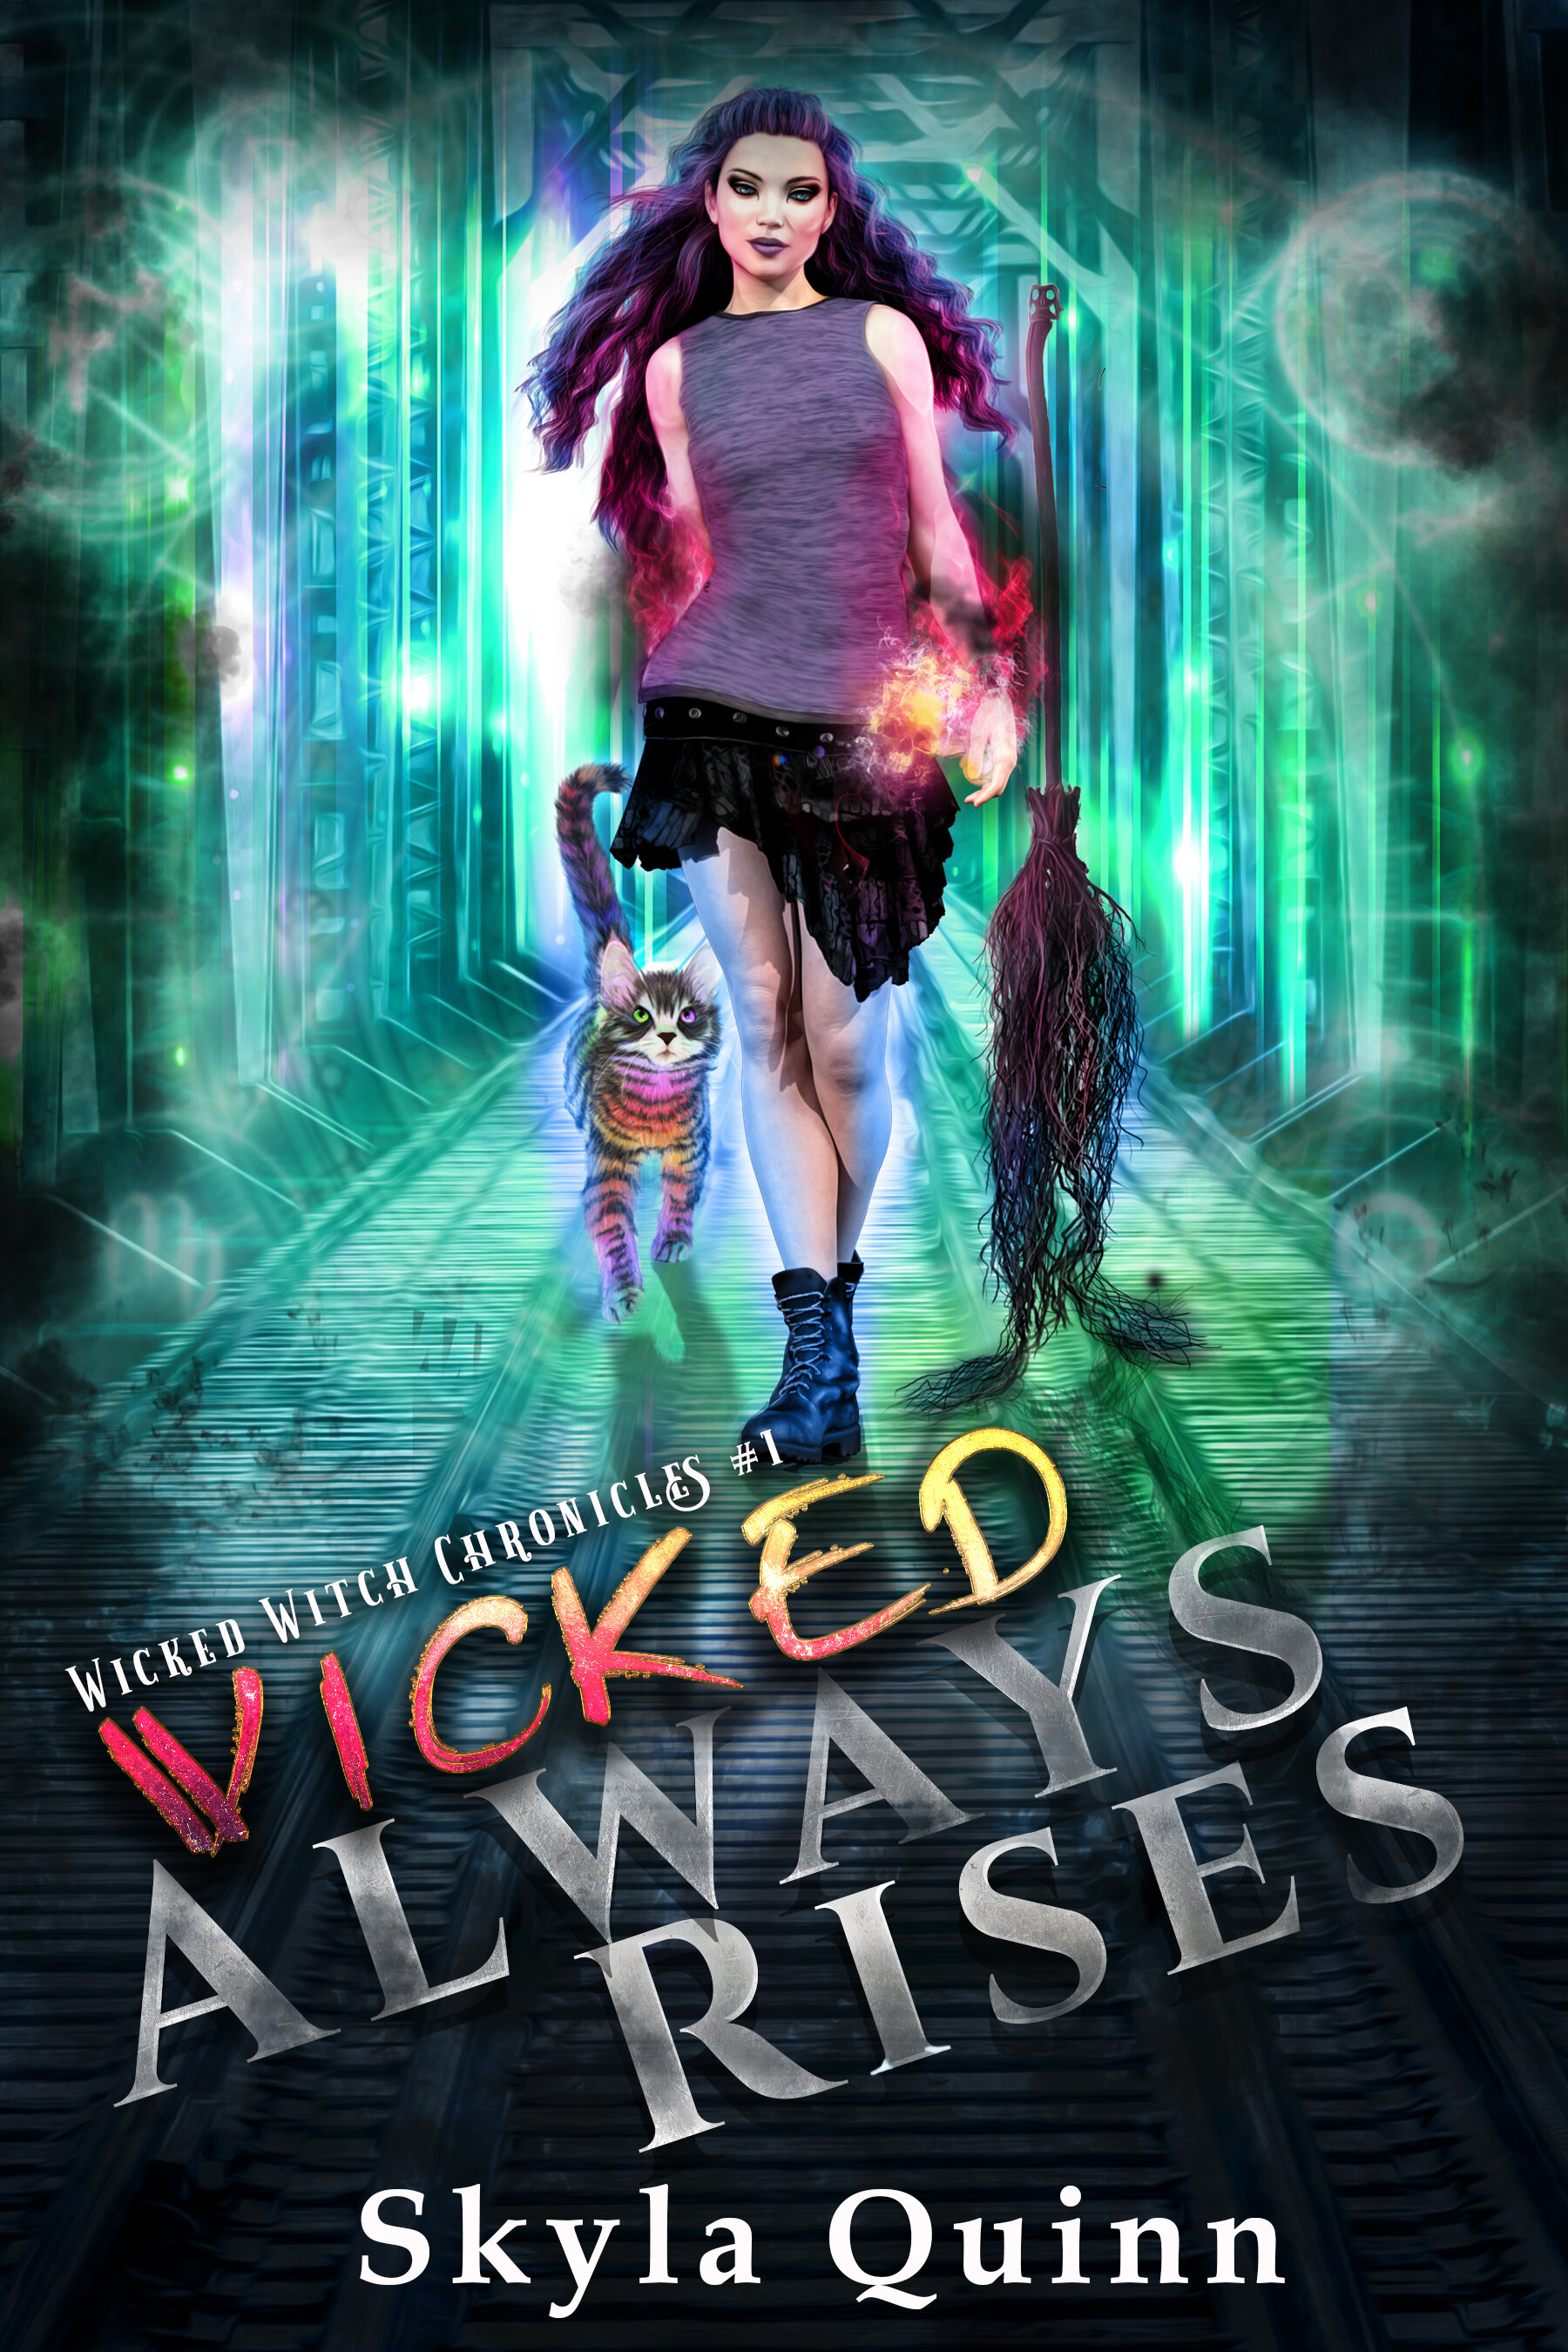 1 Wicked Witch 1i4 ebook.jpg